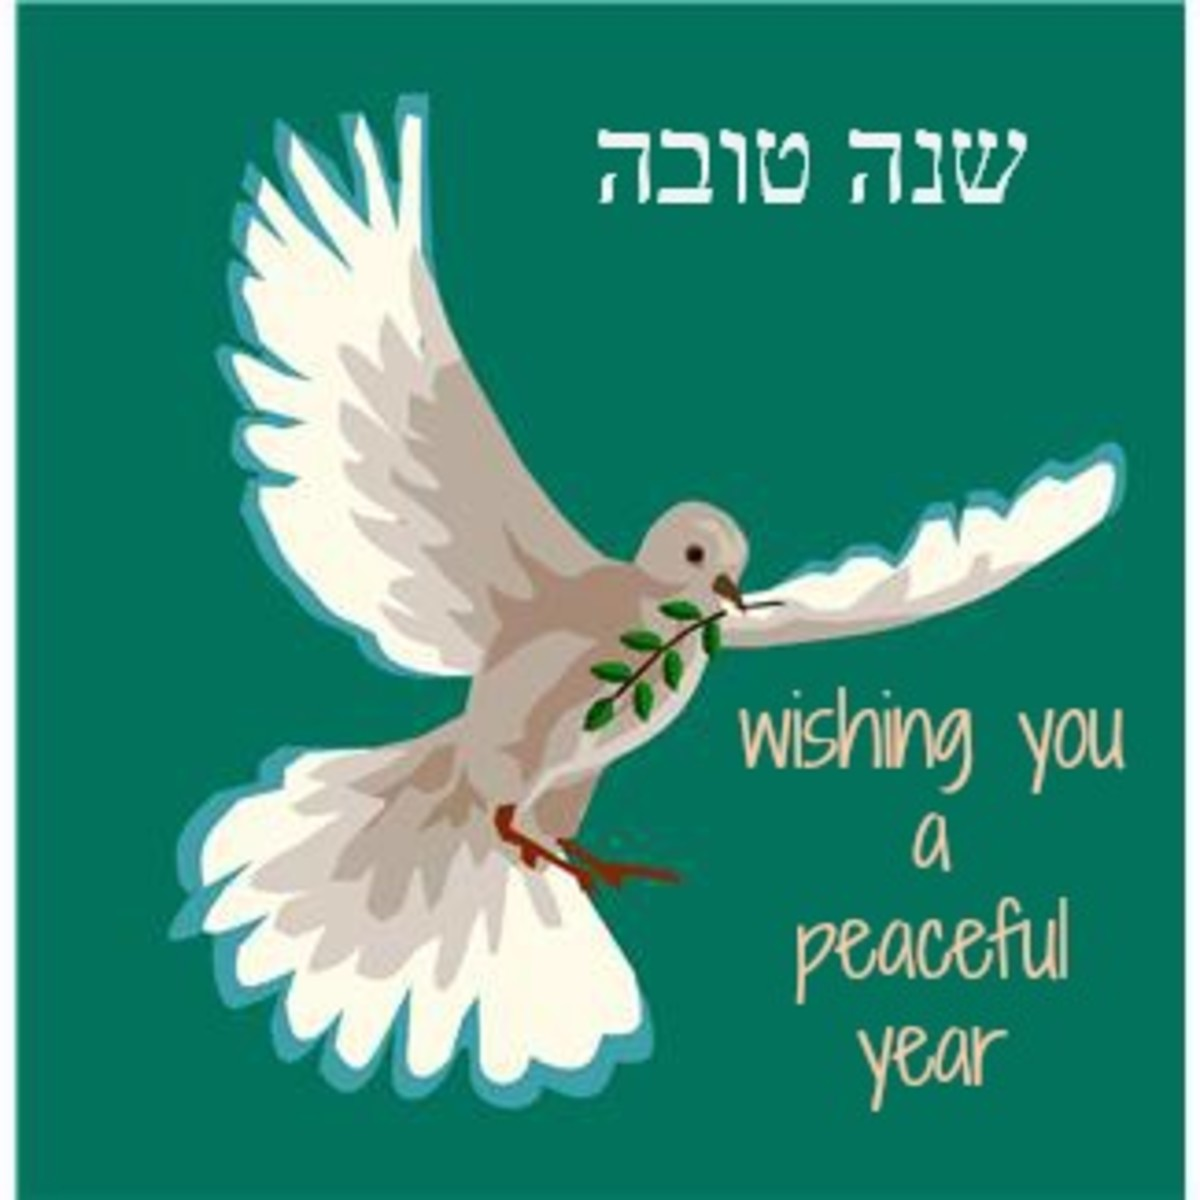 Wishing you a peaceful year